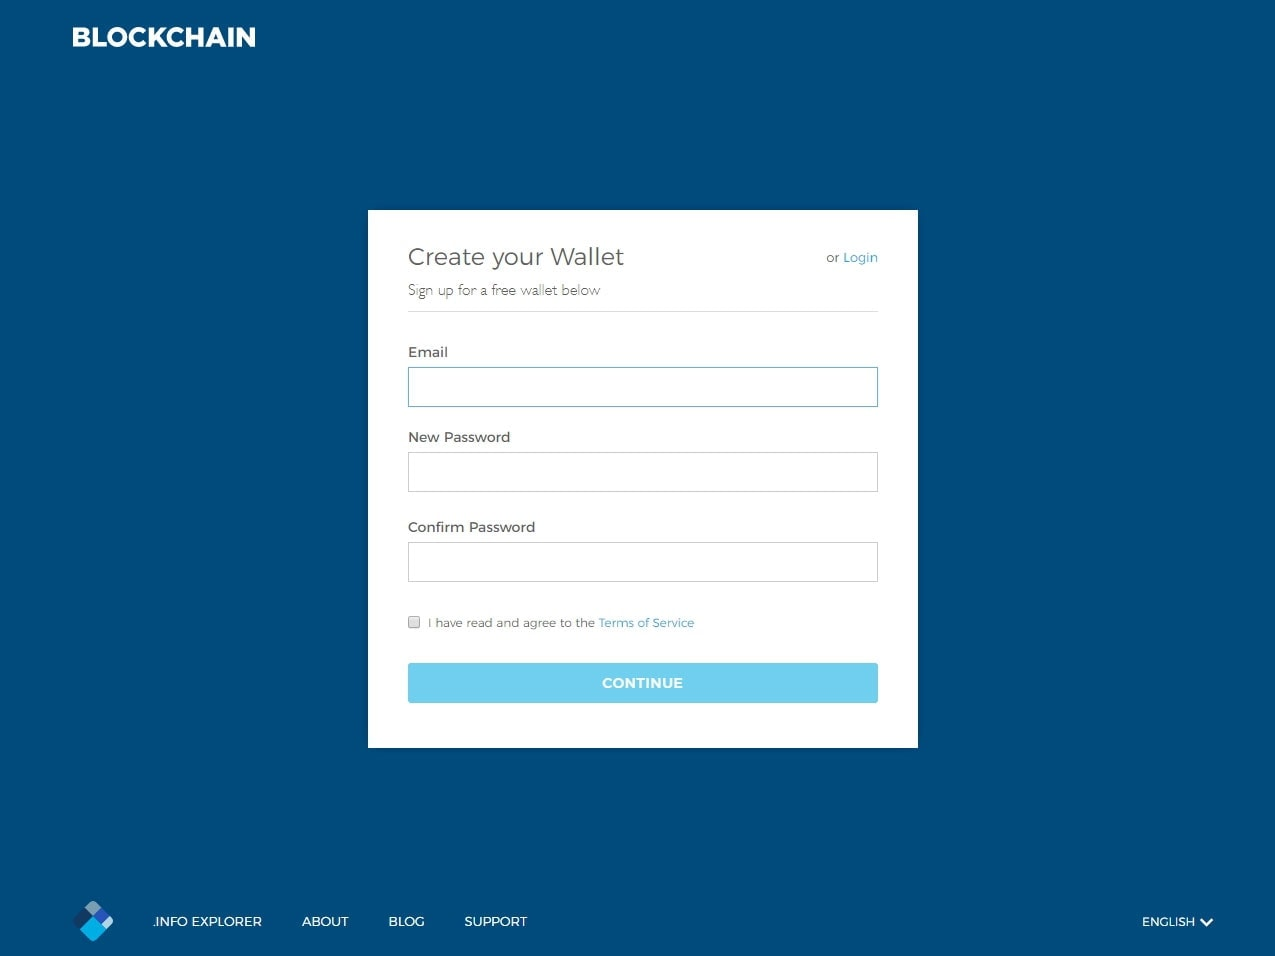 Creating a Blockchain.info Wallet